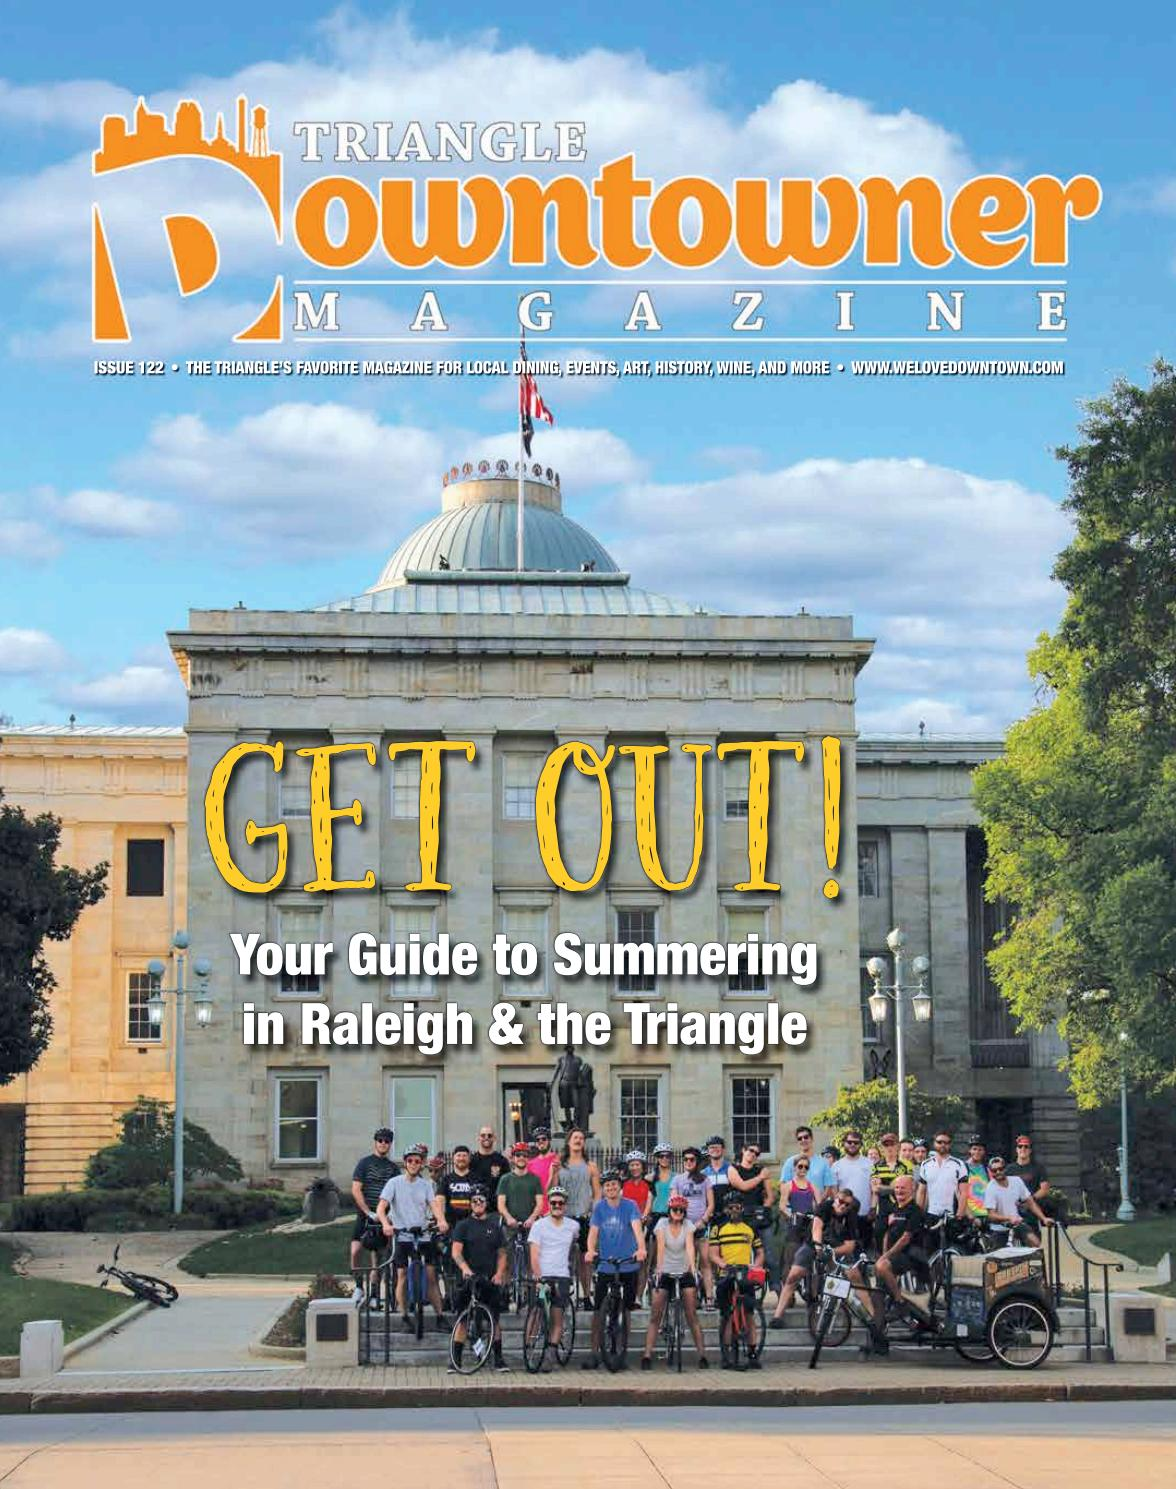 Get Out! Your Guide to Summering in Raleigh: Downtowner Magazine, Issue 122  by Triangle Downtowner Magazine - issuu